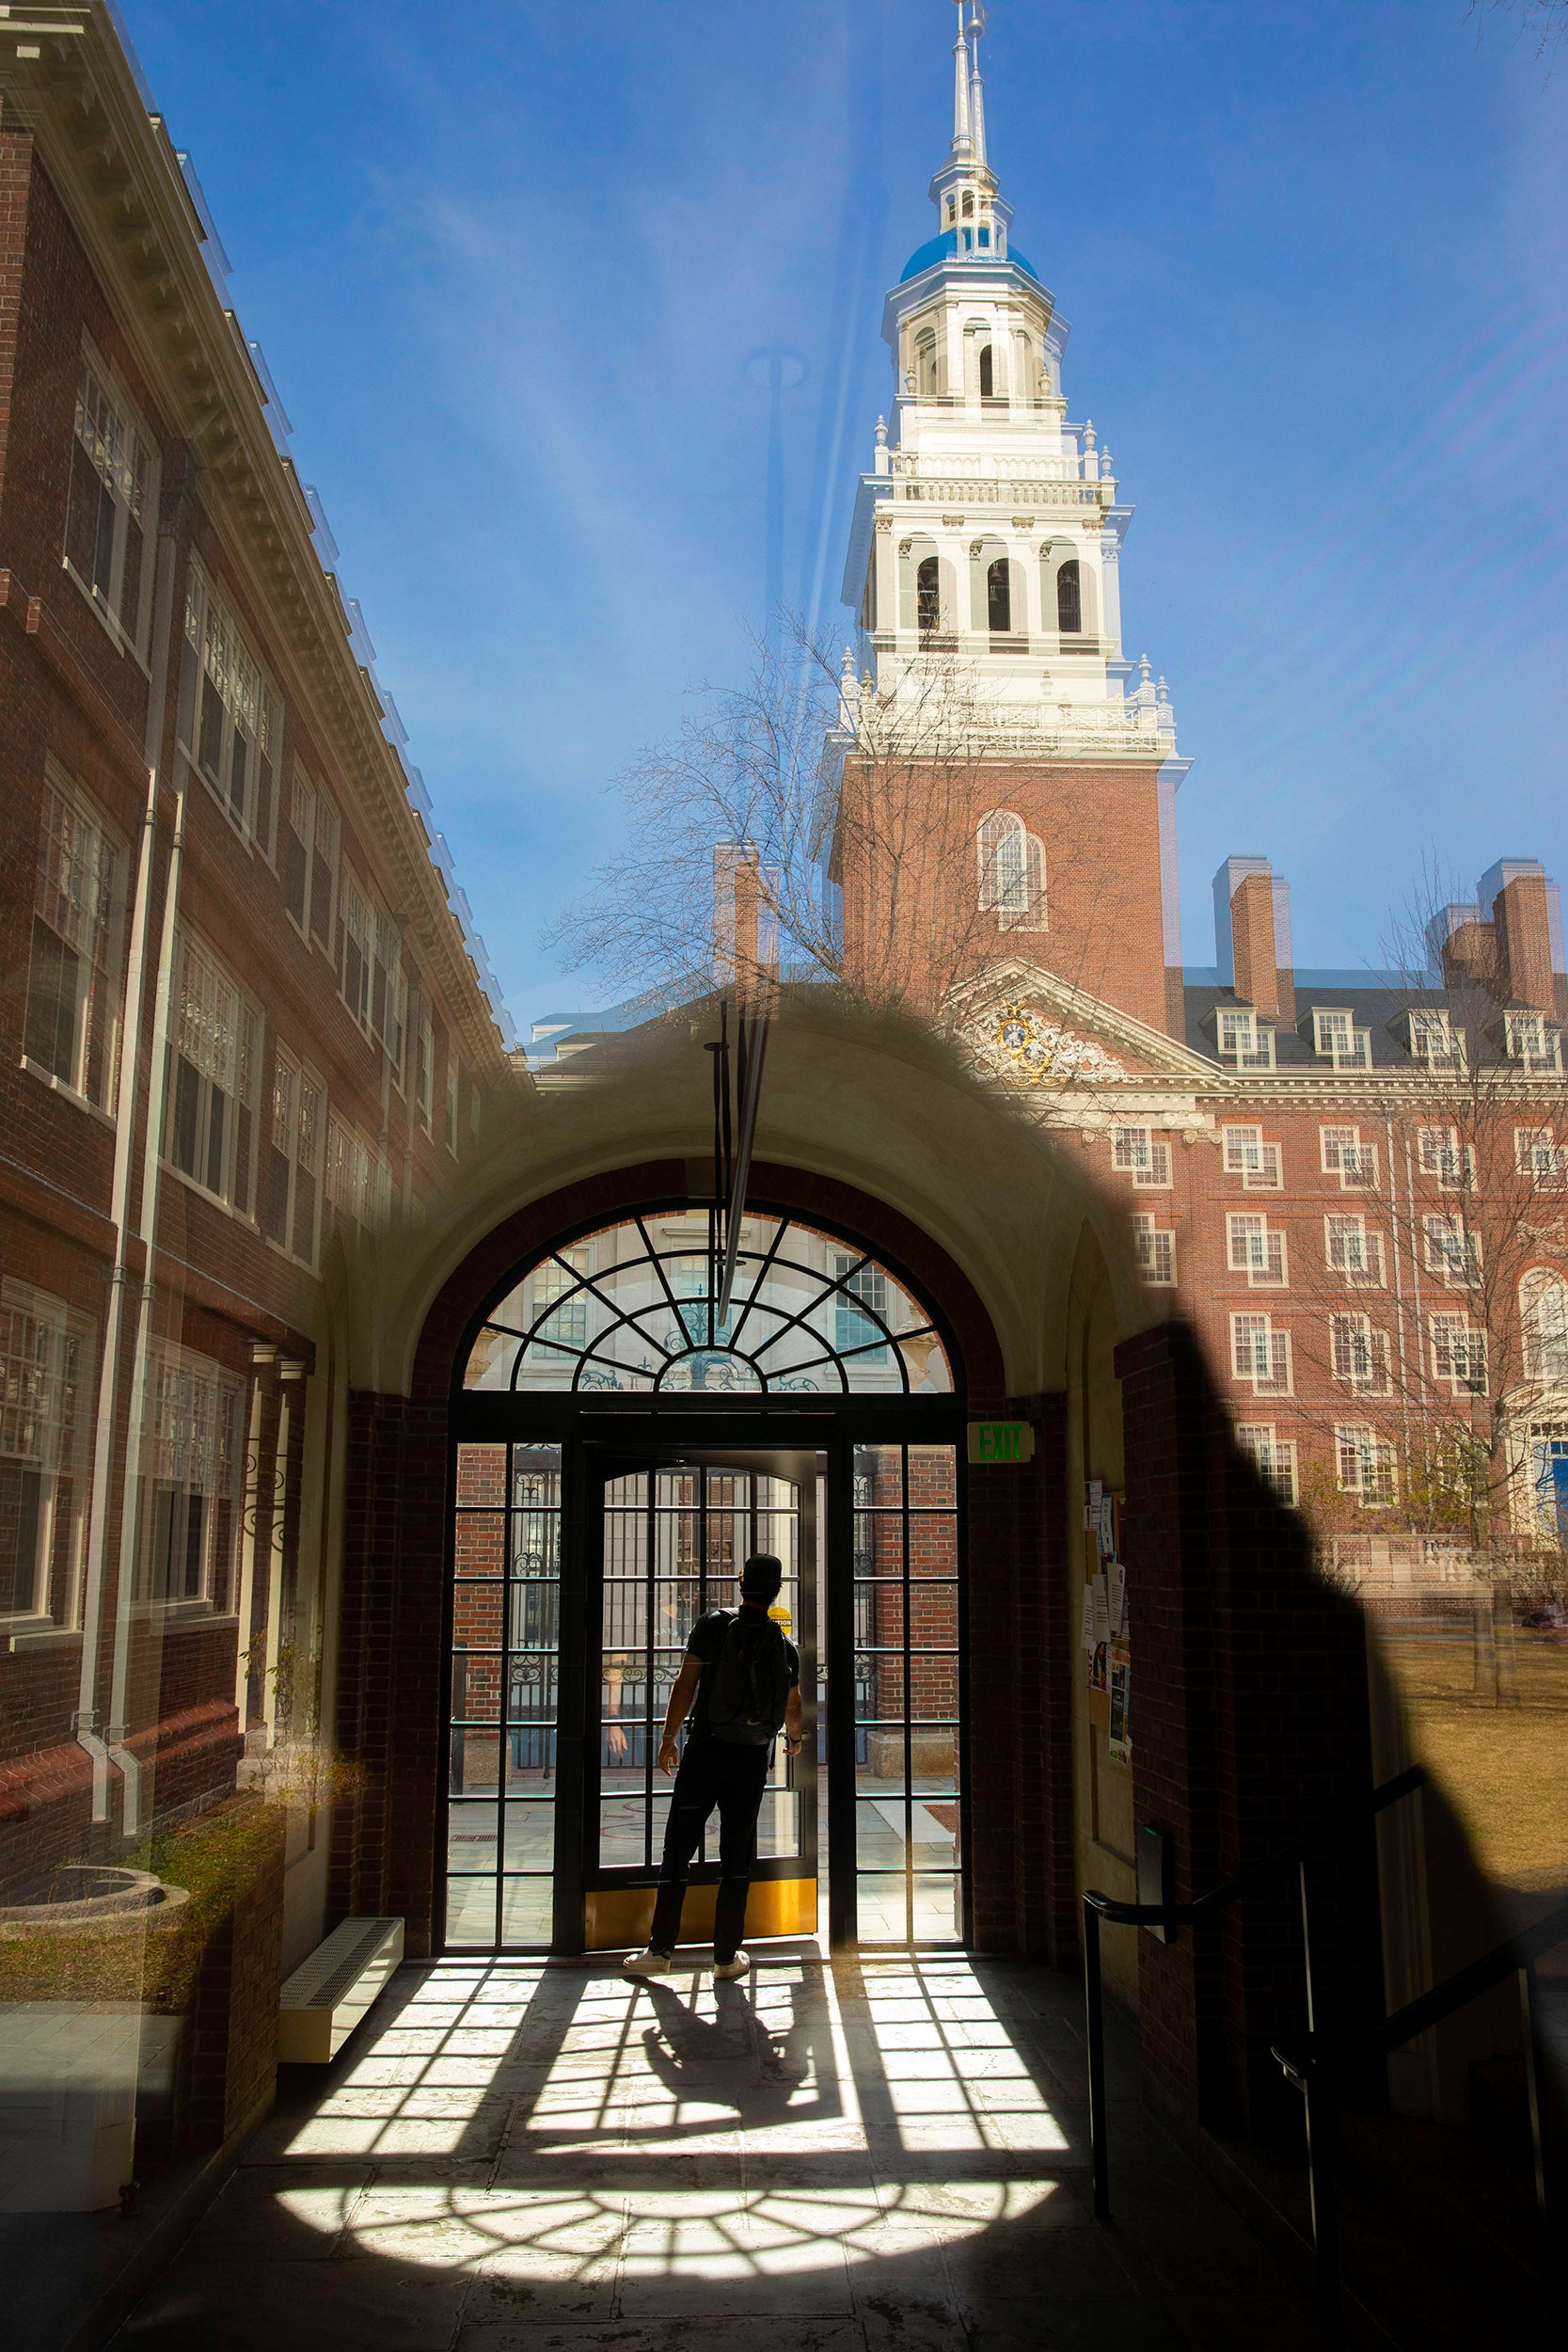 A student is framed by a bay window inside the passageway leading to the dining hall in Lowell House courtyard.